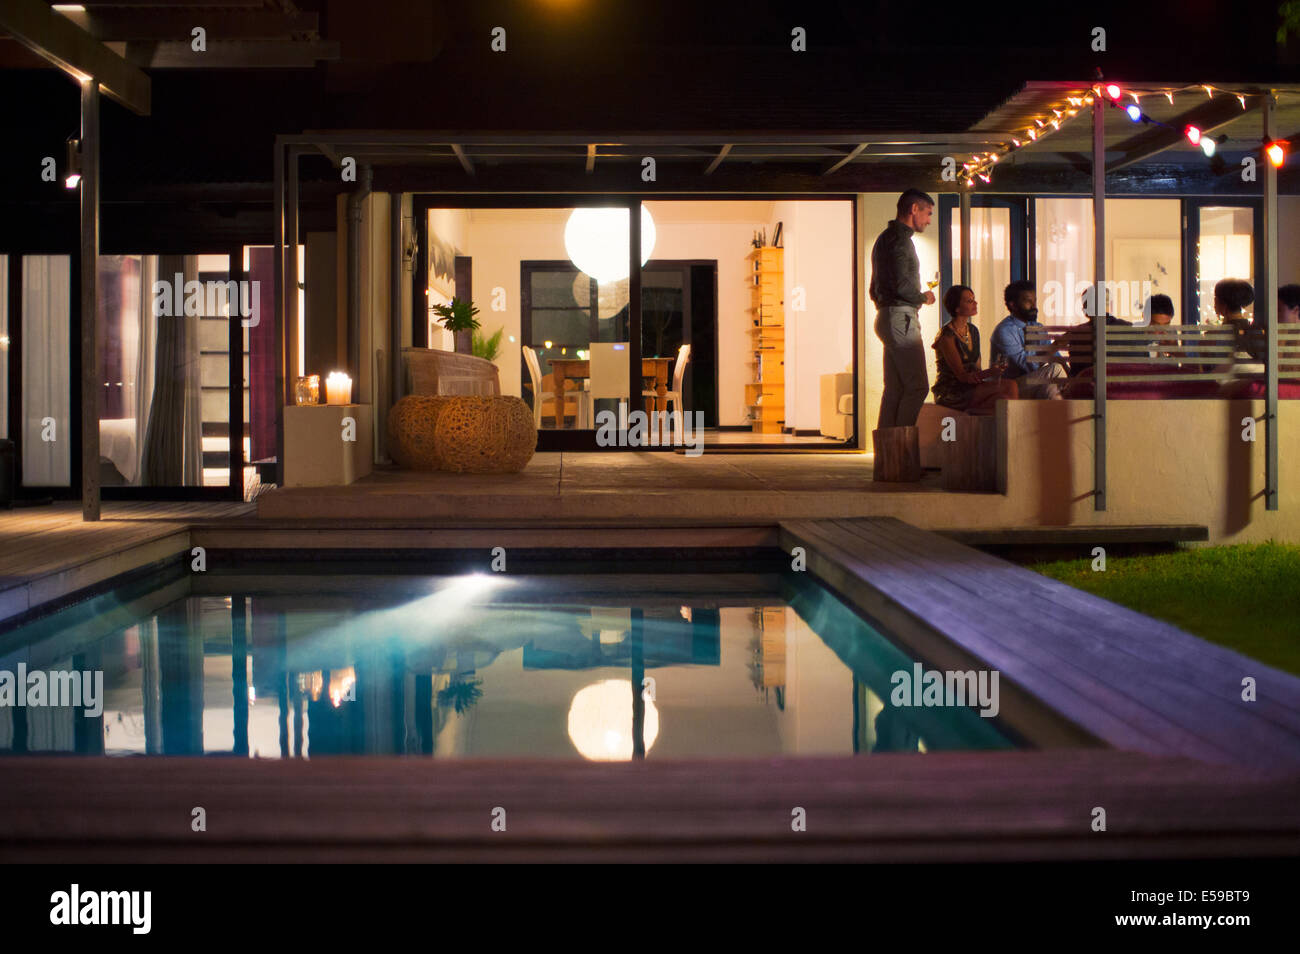 Empty immagini empty fotos stock alamy for Disegni casa piscina cortile